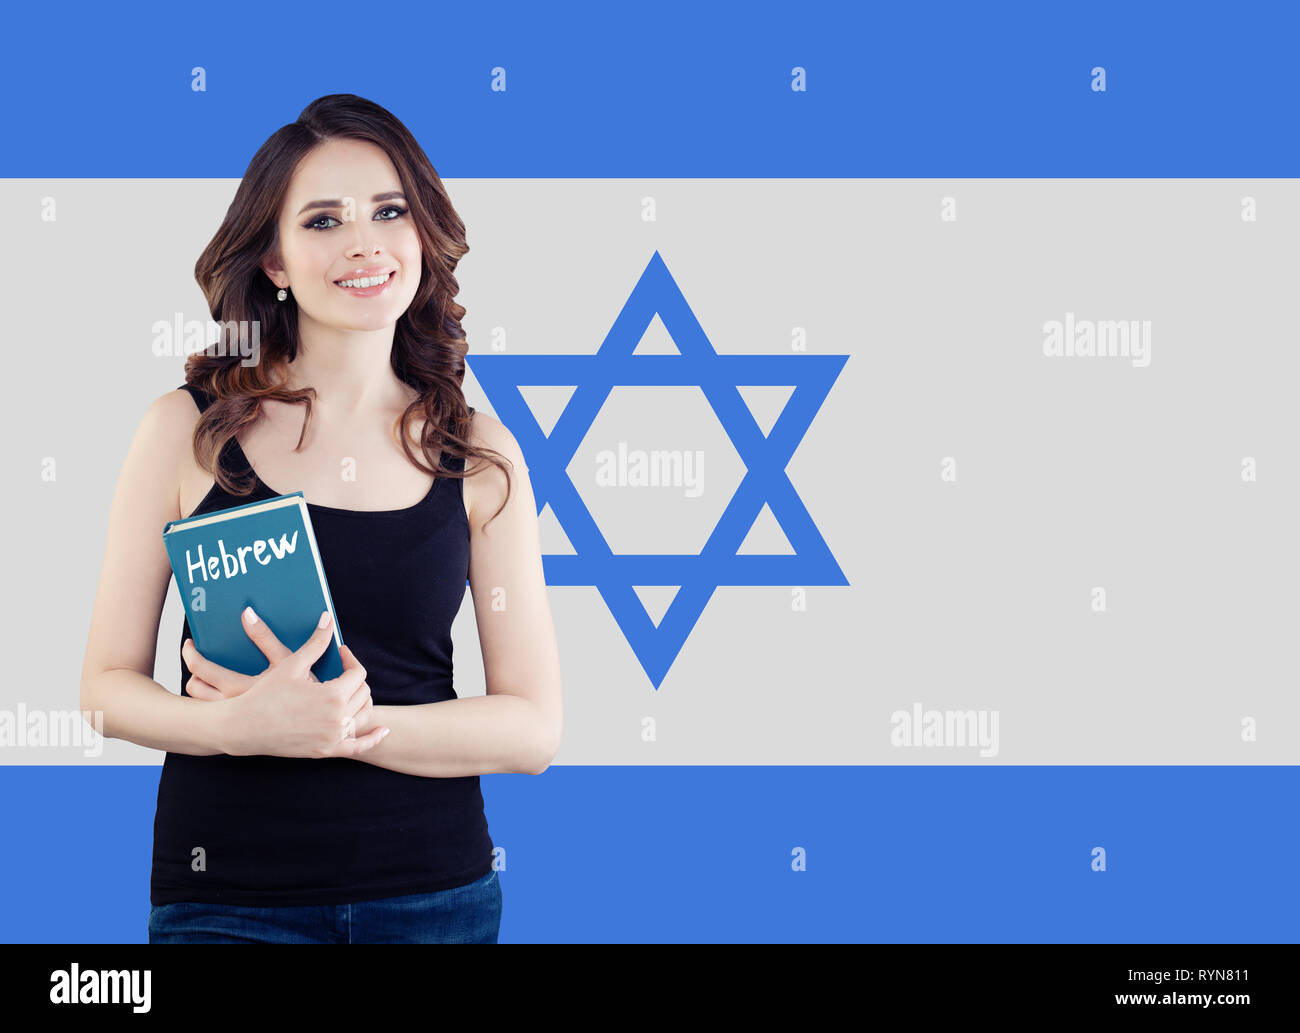 Hebrew language concept with happy woman student and the Israel flag - Stock Image